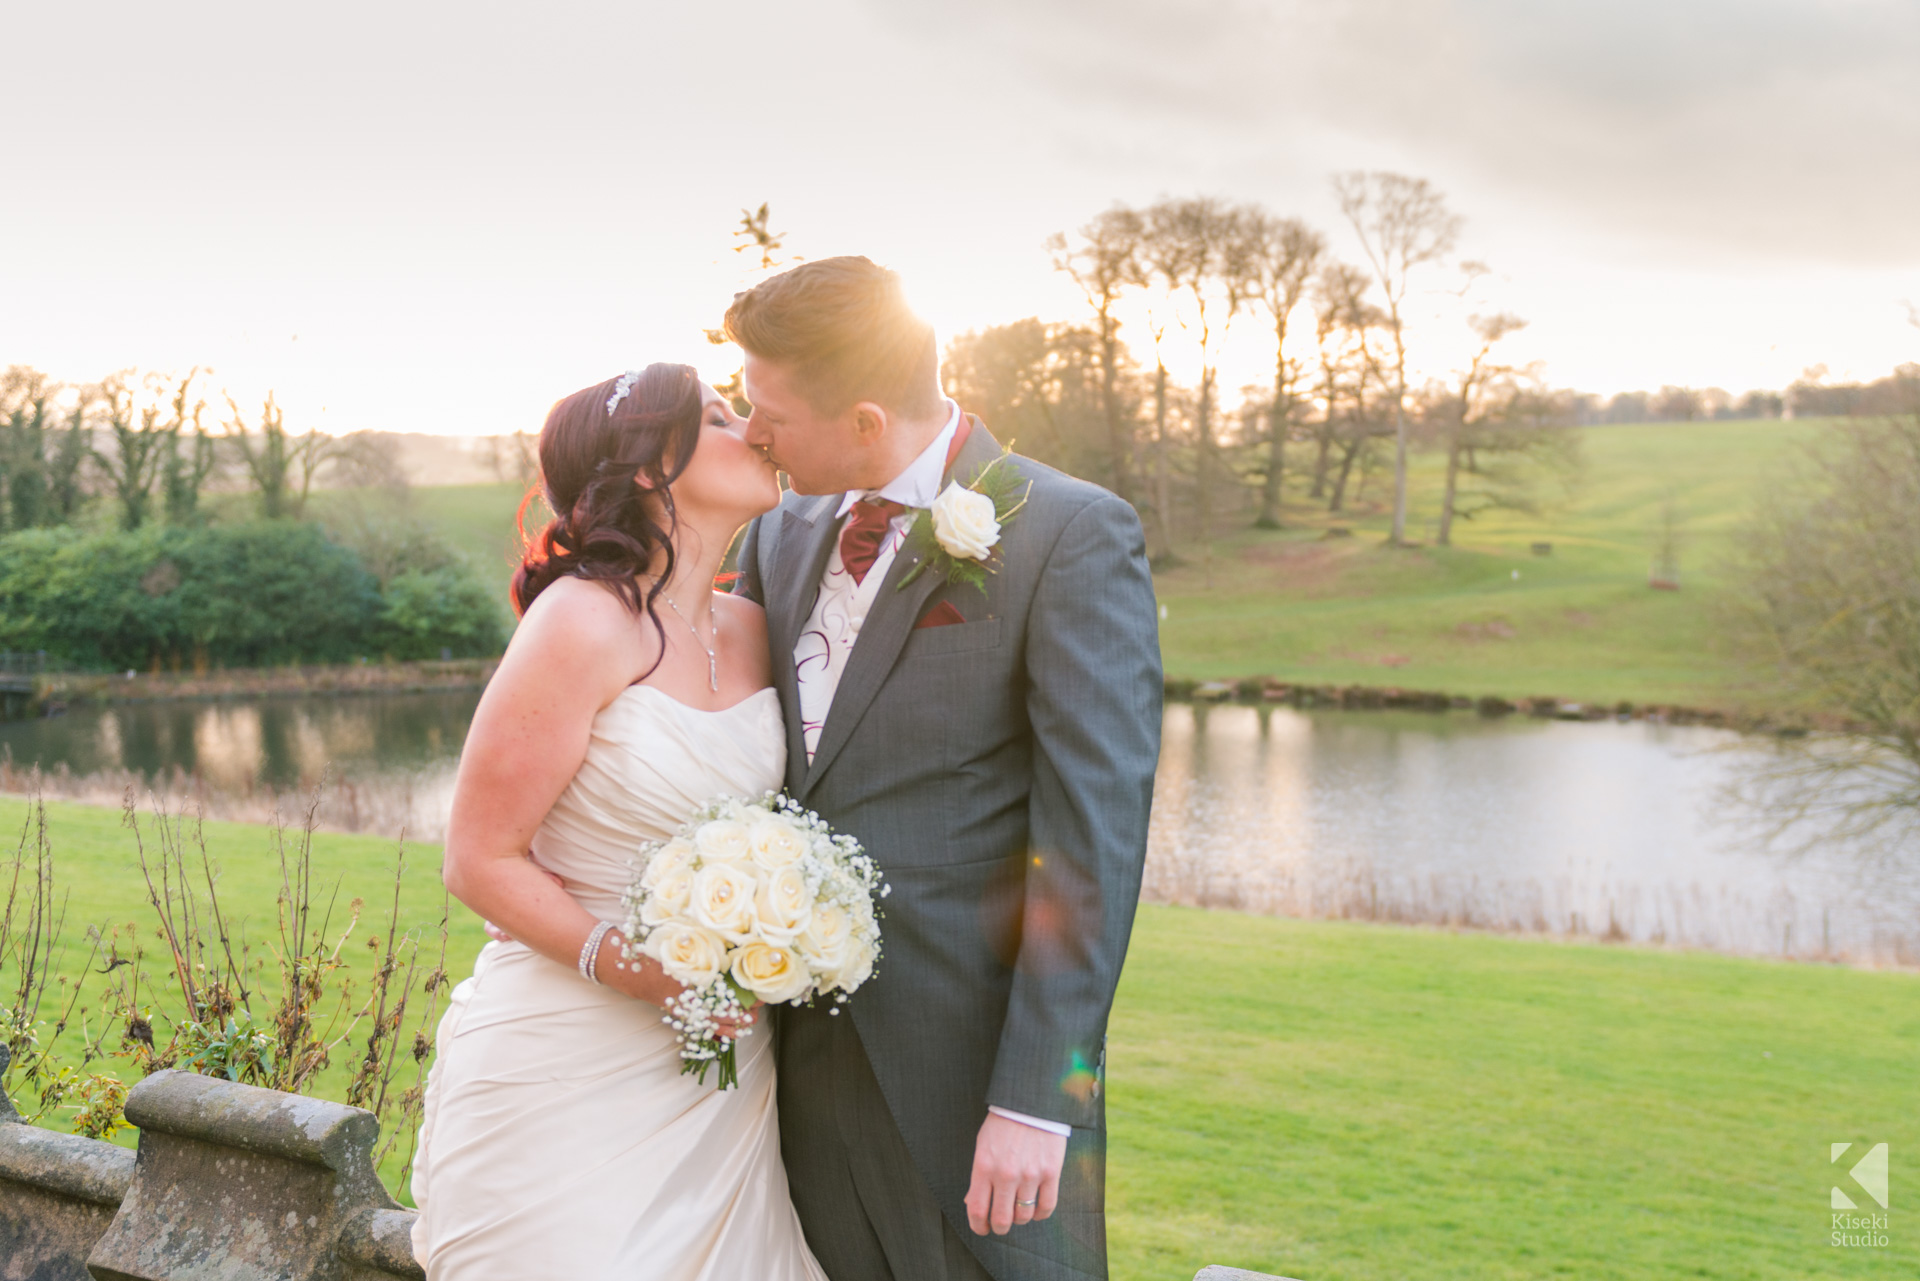 Ripley Castle Wedding - Bride and Groom kissing and sunset